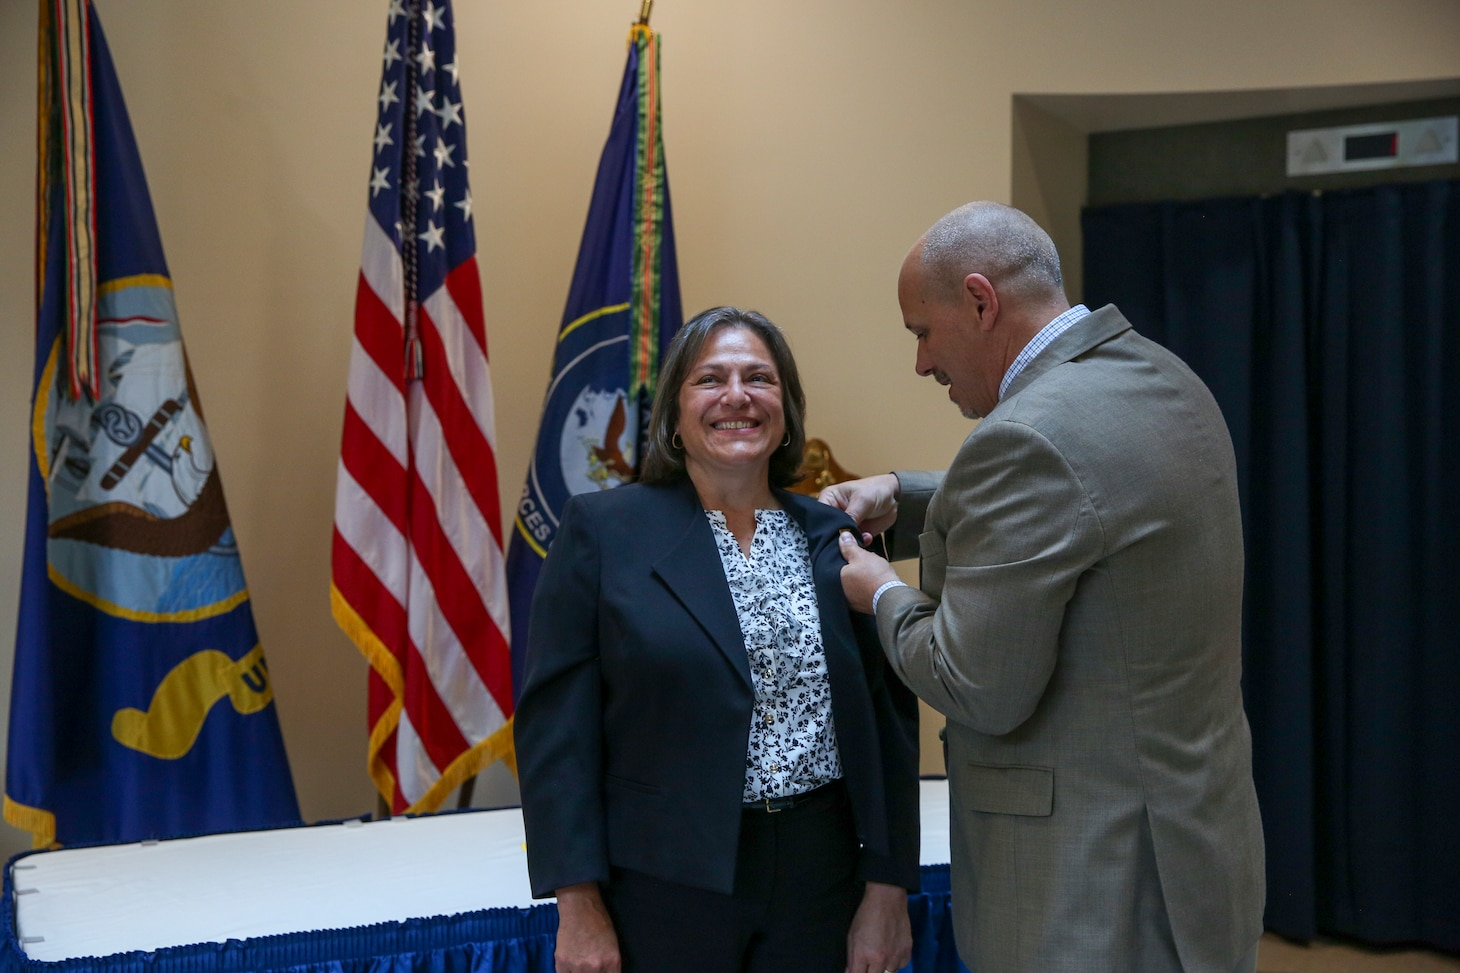 Navy Capt. Tracy Veltre Riker, a native South Brunswick, New Jersey and current resident of Virginia Beach,Virginia, receives the senior executive service (SES) lapel pin from her spouse during her promotion to the position of director, Fleet Installations and Environment Readiness at U.S. Fleet Forces (USFF) Command in Norfolk, Virginia.